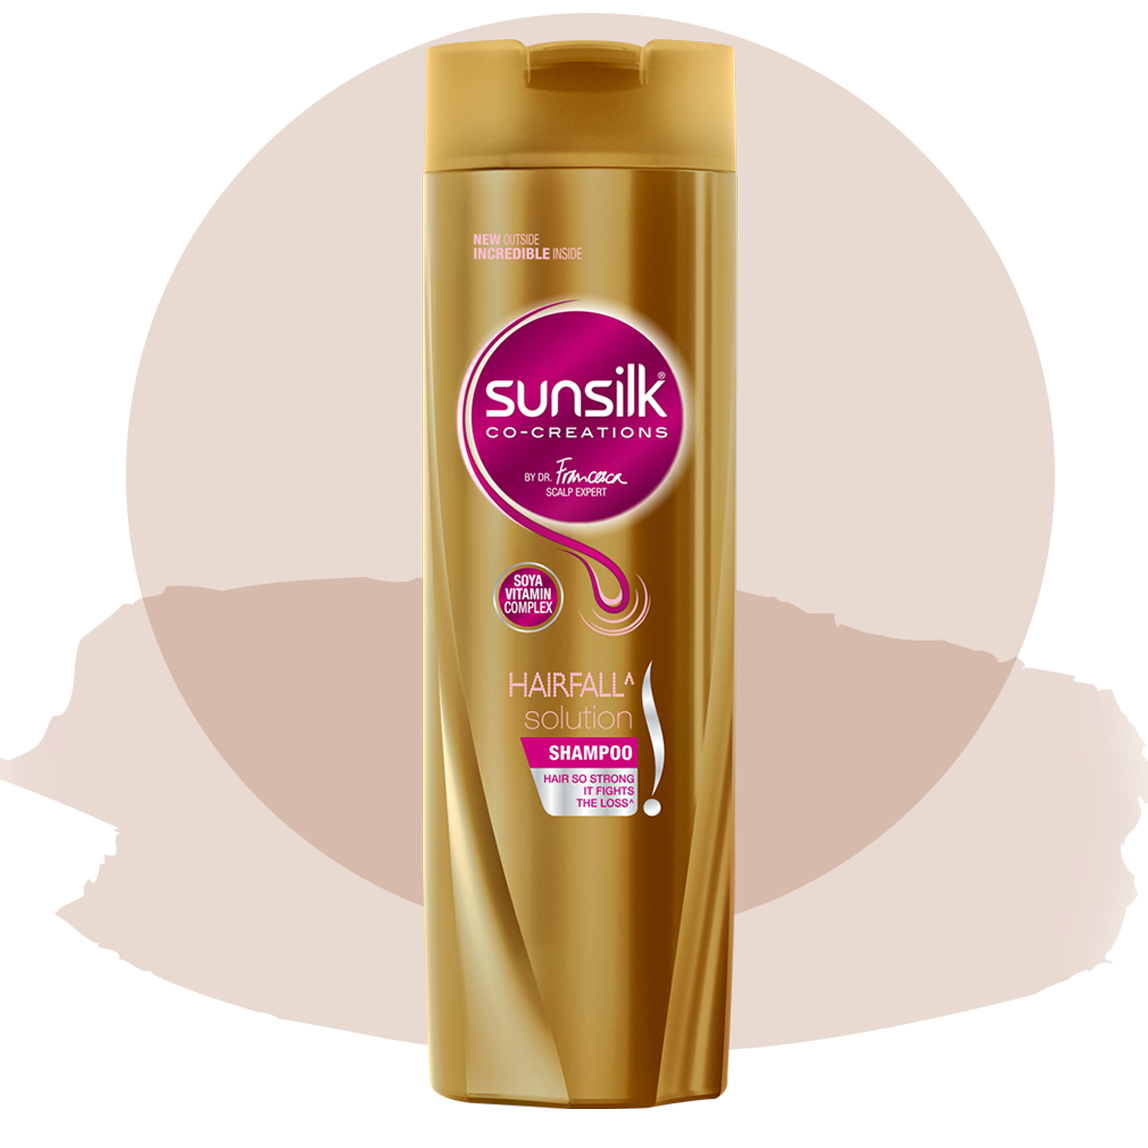 marketing plan report of sunsilk shampoo How to market shampoo learn about the components, process and method to the madness of marketing and advertising shampoo find it all at marketing-schoolsorg.